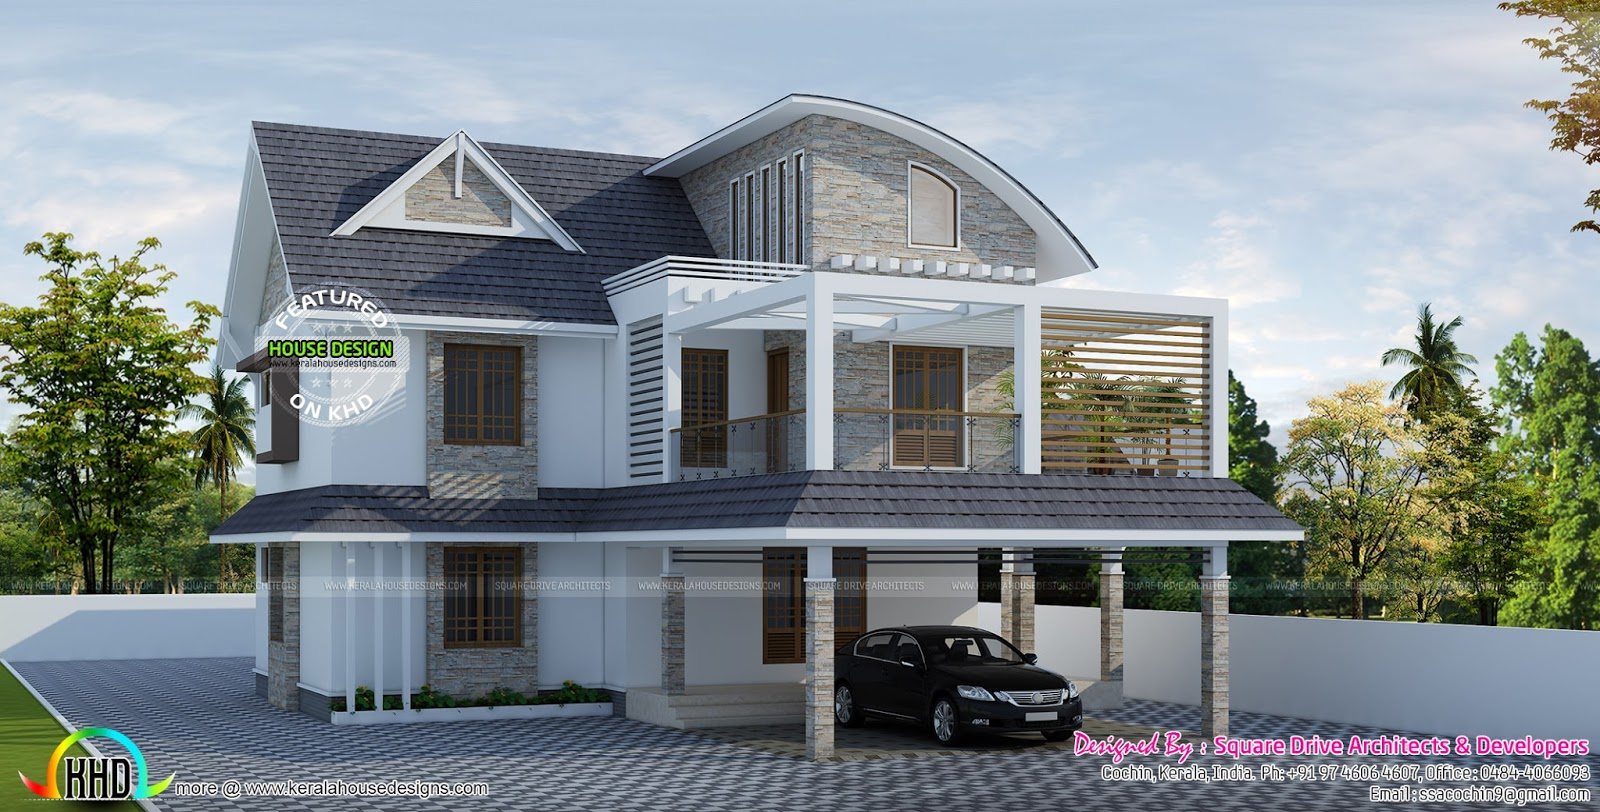 Curved roof mix villa architecture kerala home design for Curved roof house plans